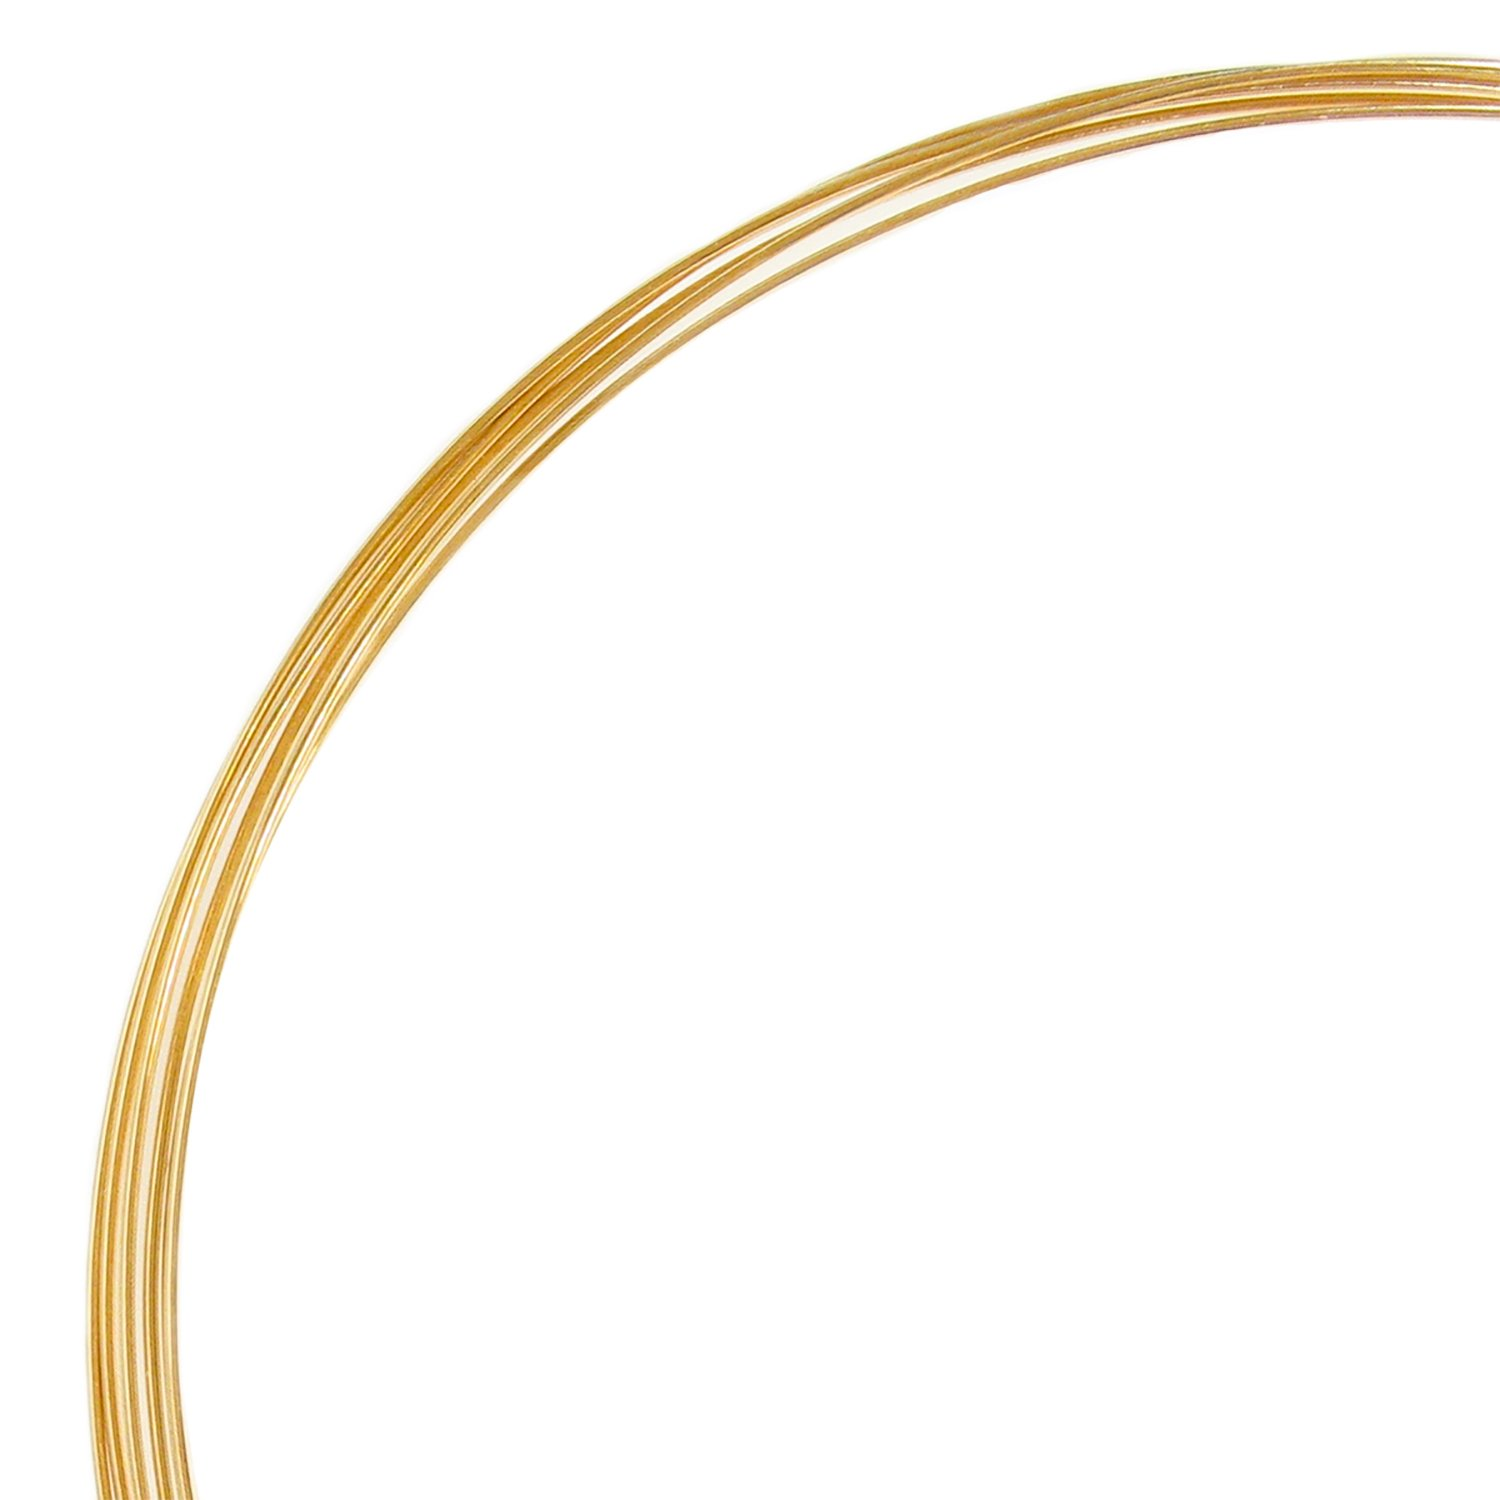 5ft Fine 14k Gold Filled Round Wire 26 Gauge 26ga (0.4mm) Half Hard Dreambell GFW101-04